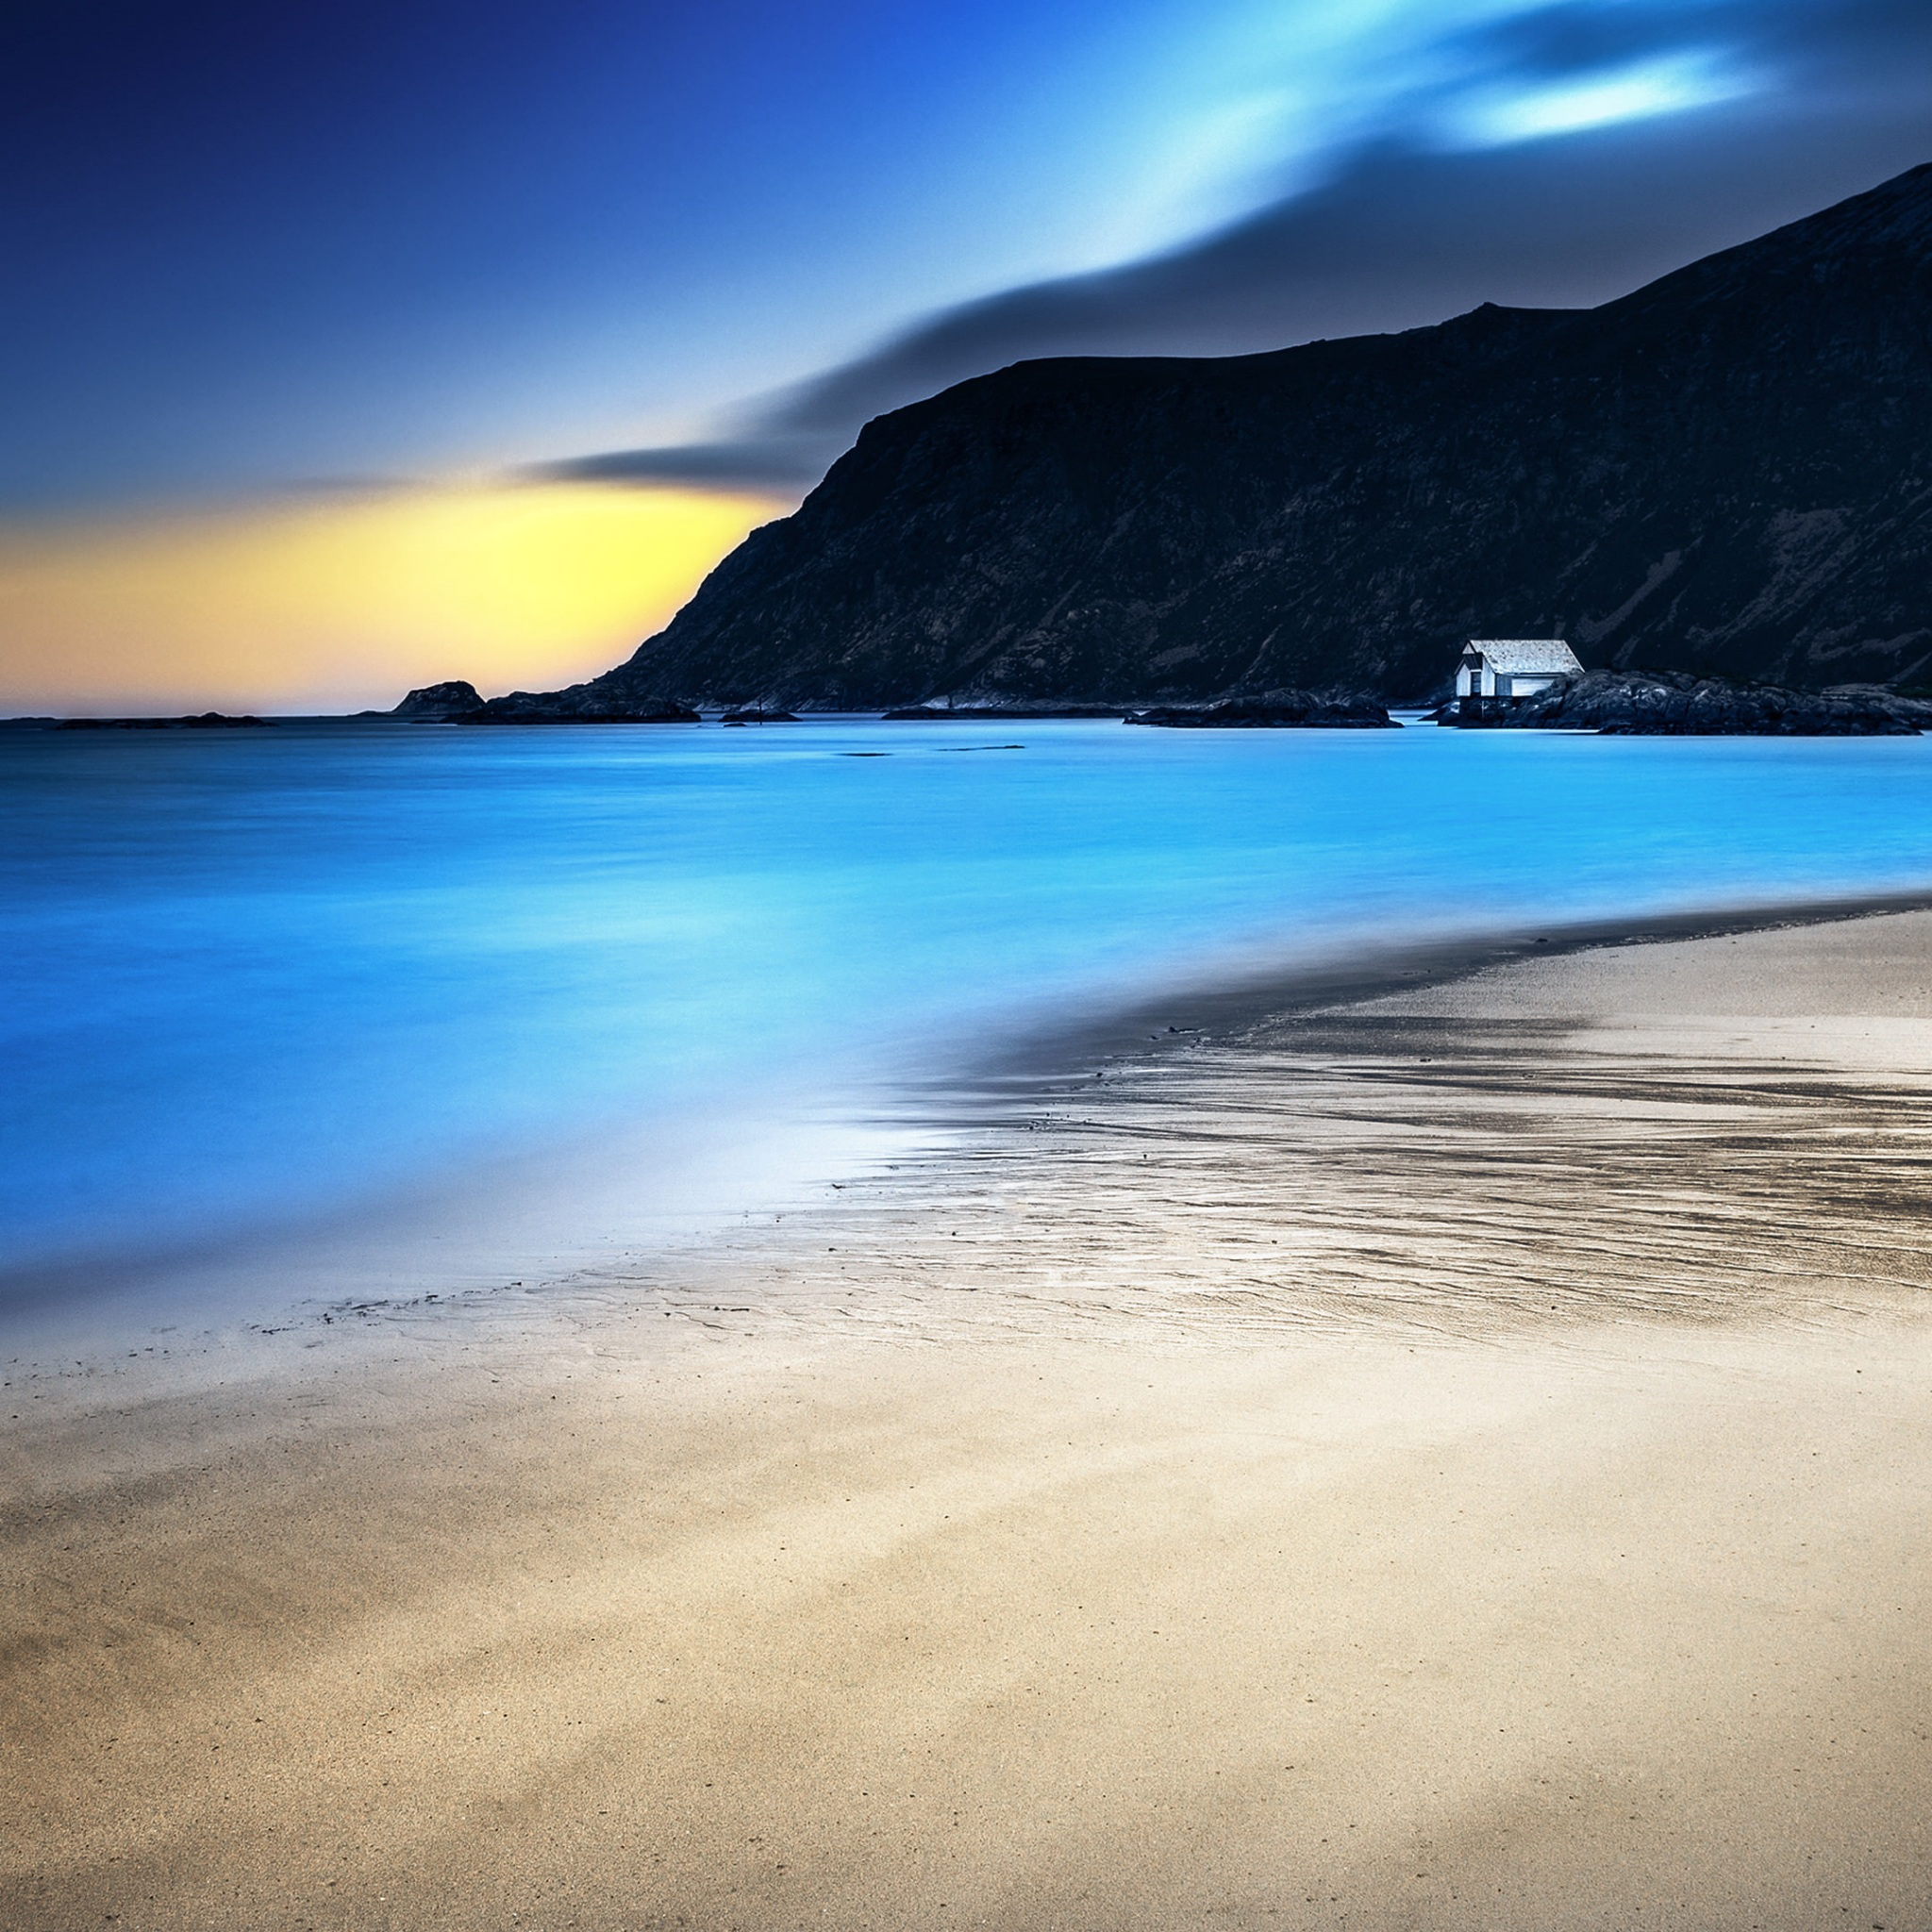 night beach 4k